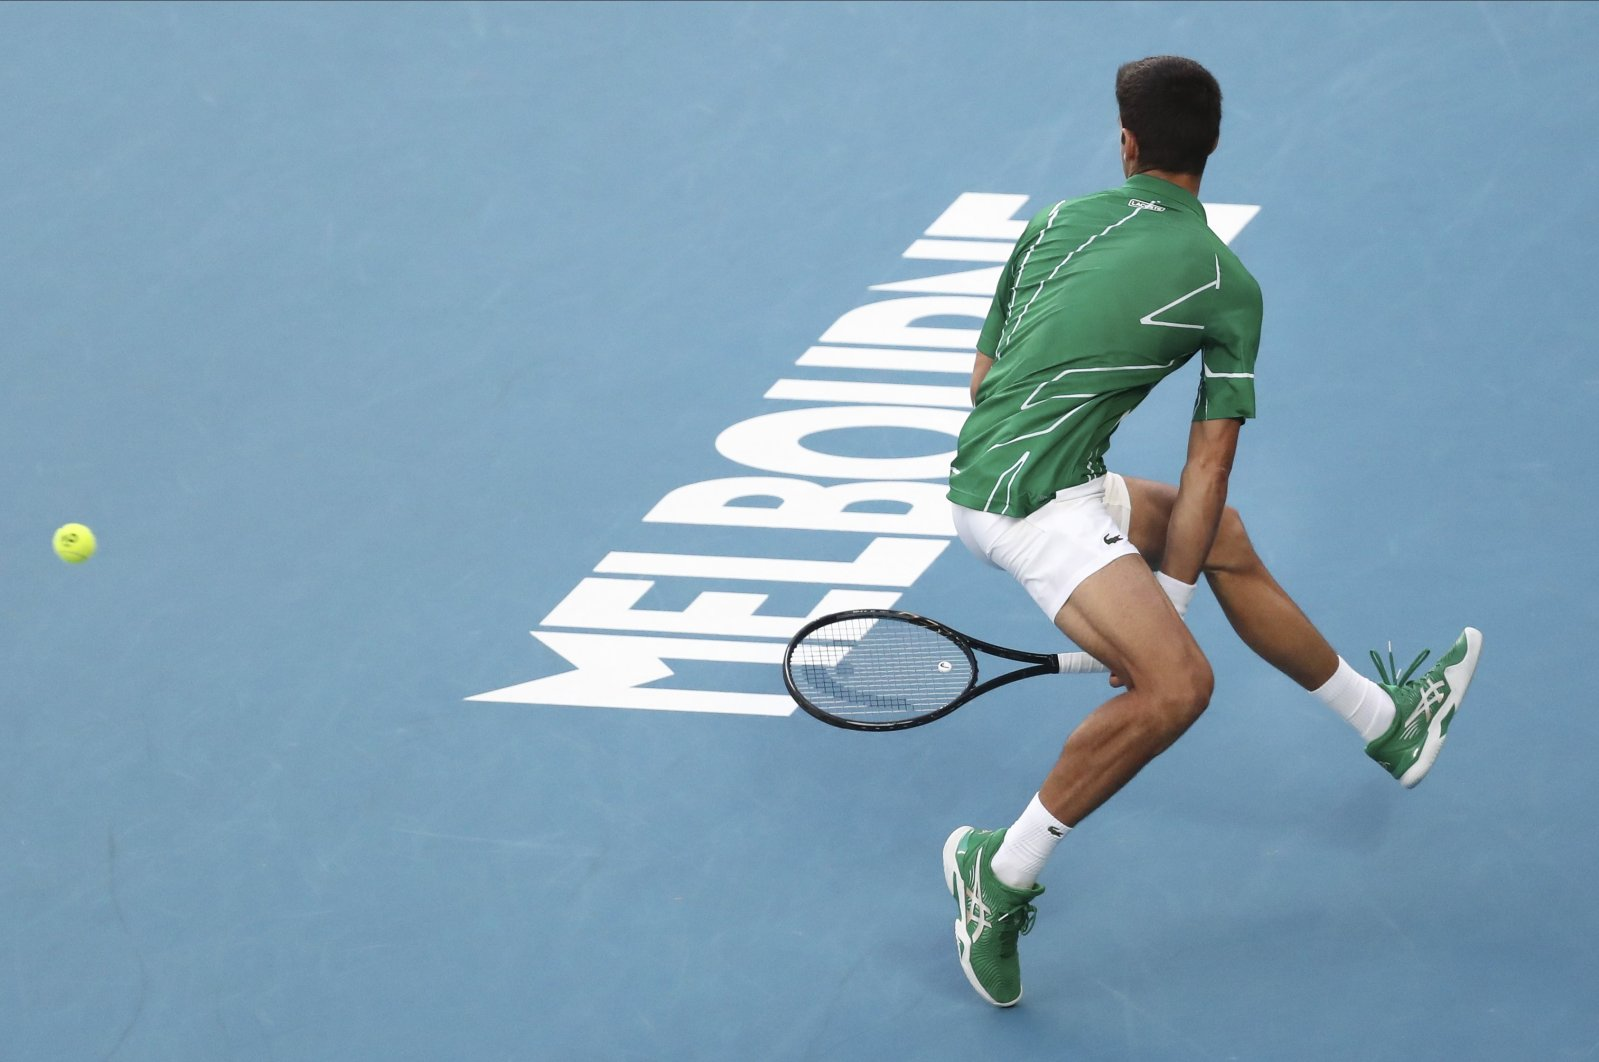 Novak Djokovic plays a ball back to Dominic Thiem during the men's singles final at the Australian Open tennis championship in Melbourne, Australia, Feb. 2, 2020. (AP Photo)